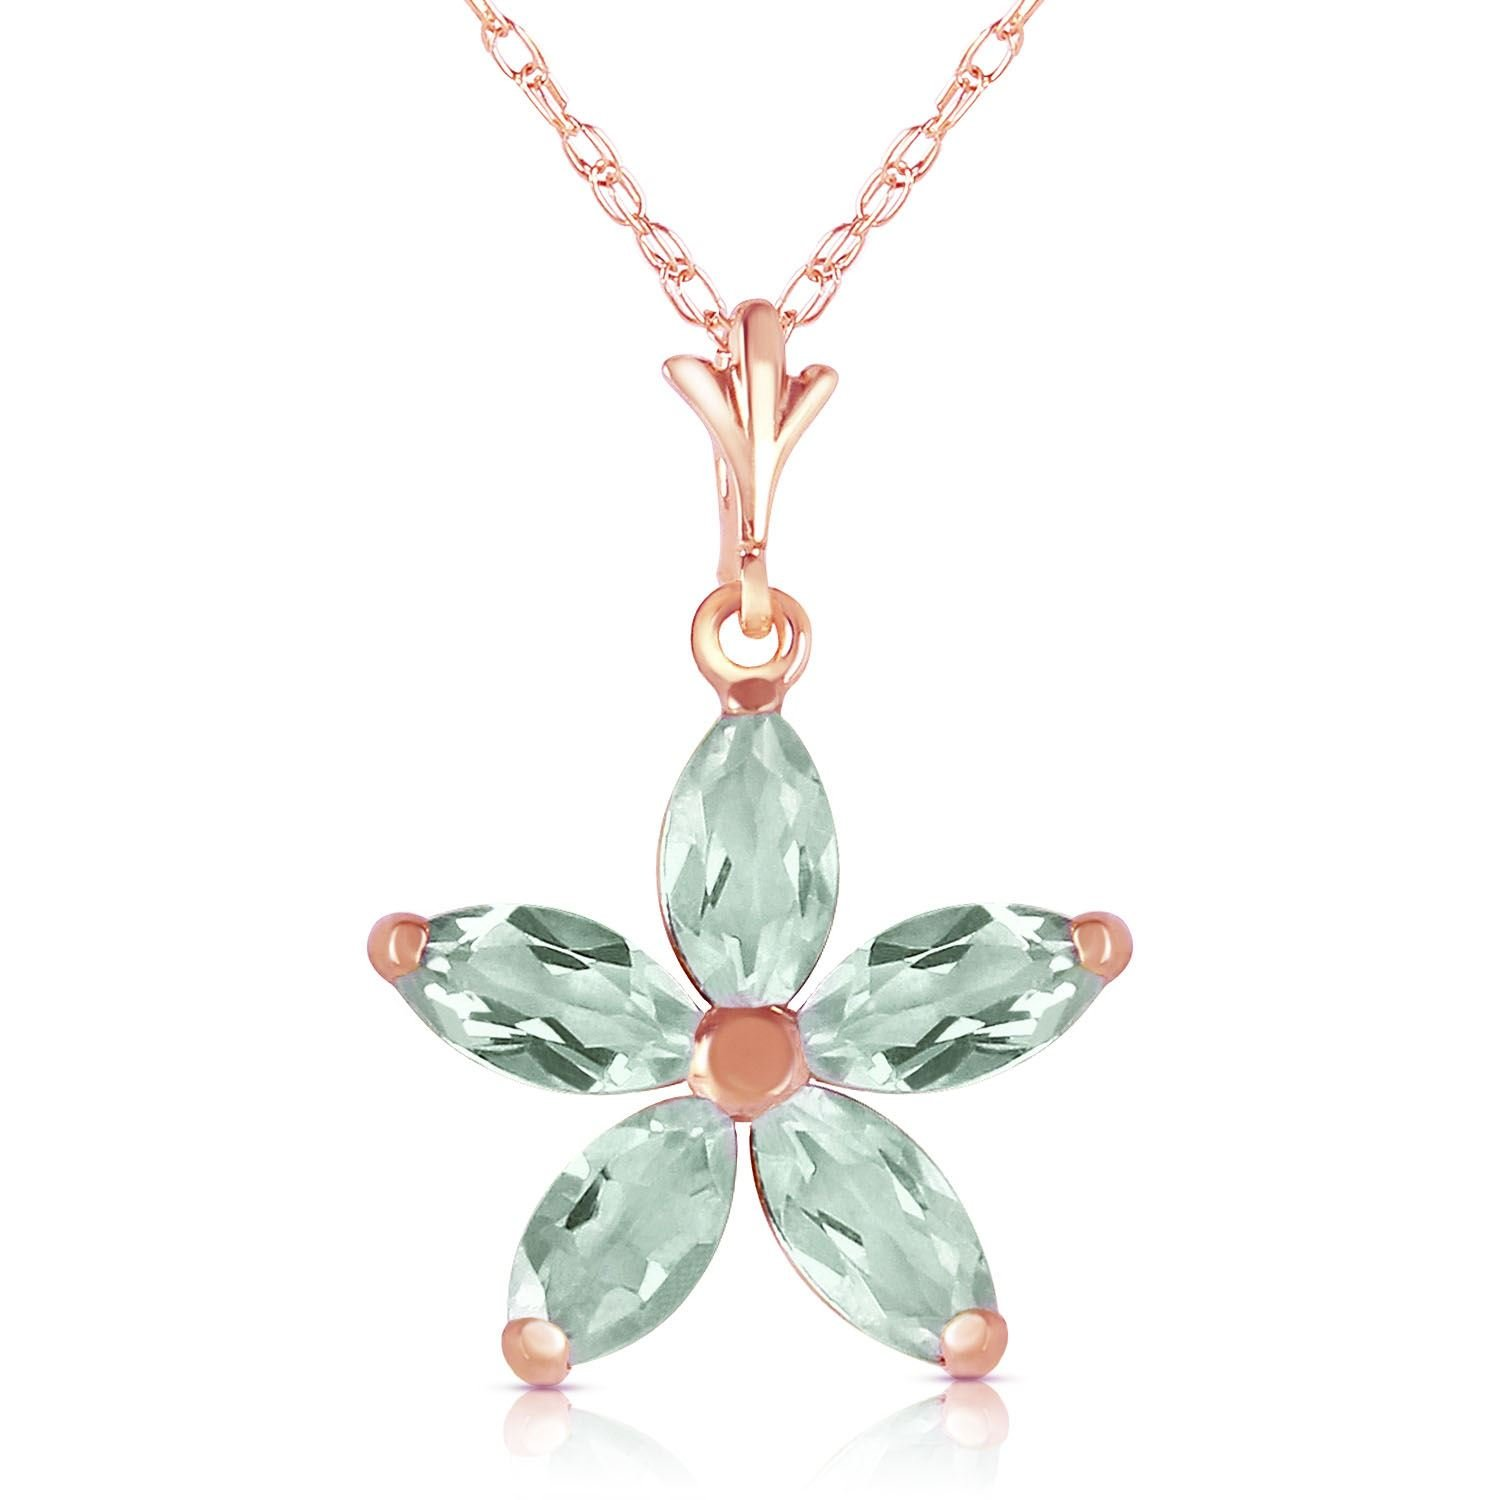 ALARRI 14K Solid Rose Gold Necklace w// Natural Green Amethysts with 18 Inch Chain Length